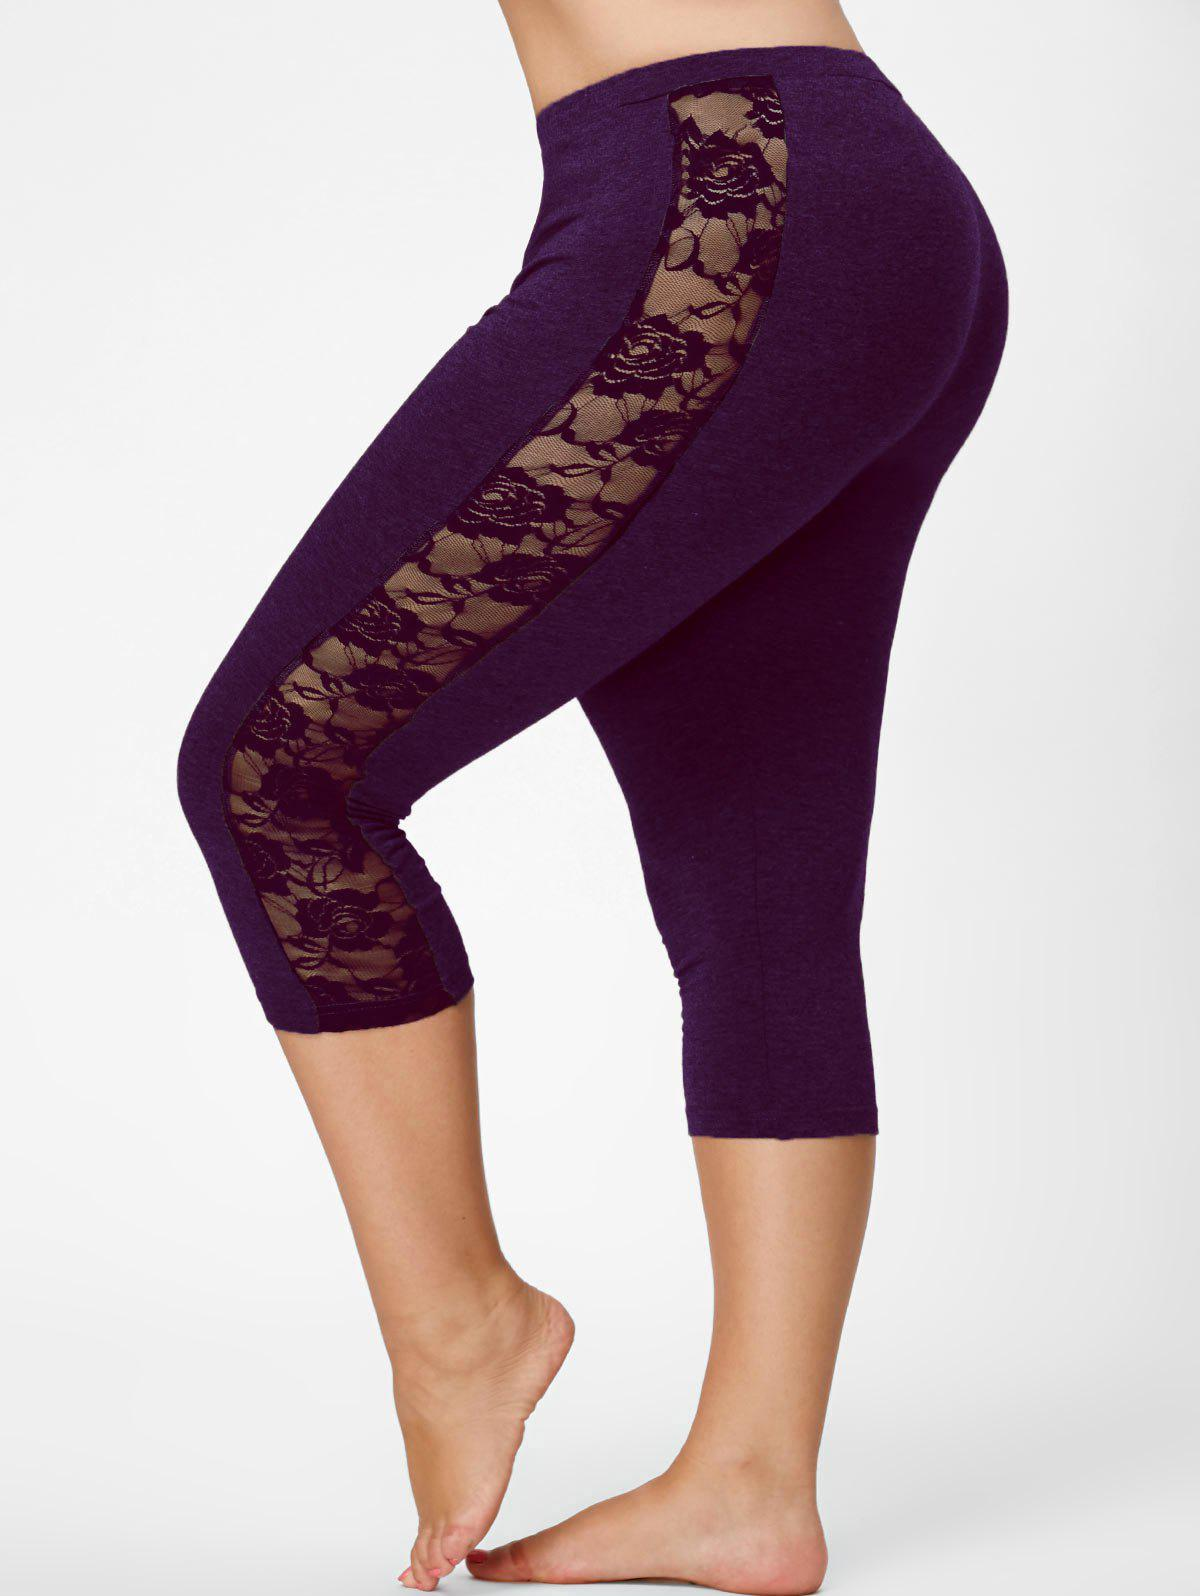 Mesh Panel Lace Plus Size Cropped LeggingsWOMEN<br><br>Size: 4XL; Color: DEEP PURPLE; Style: Active; Length: Capri; Material: Polyester,Spandex; Fit Type: Skinny; Waist Type: Mid; Closure Type: Elastic Waist; Pattern Type: Solid; Pant Style: Pencil Pants; Weight: 0.2350kg; Package Contents: 1 x Leggings;